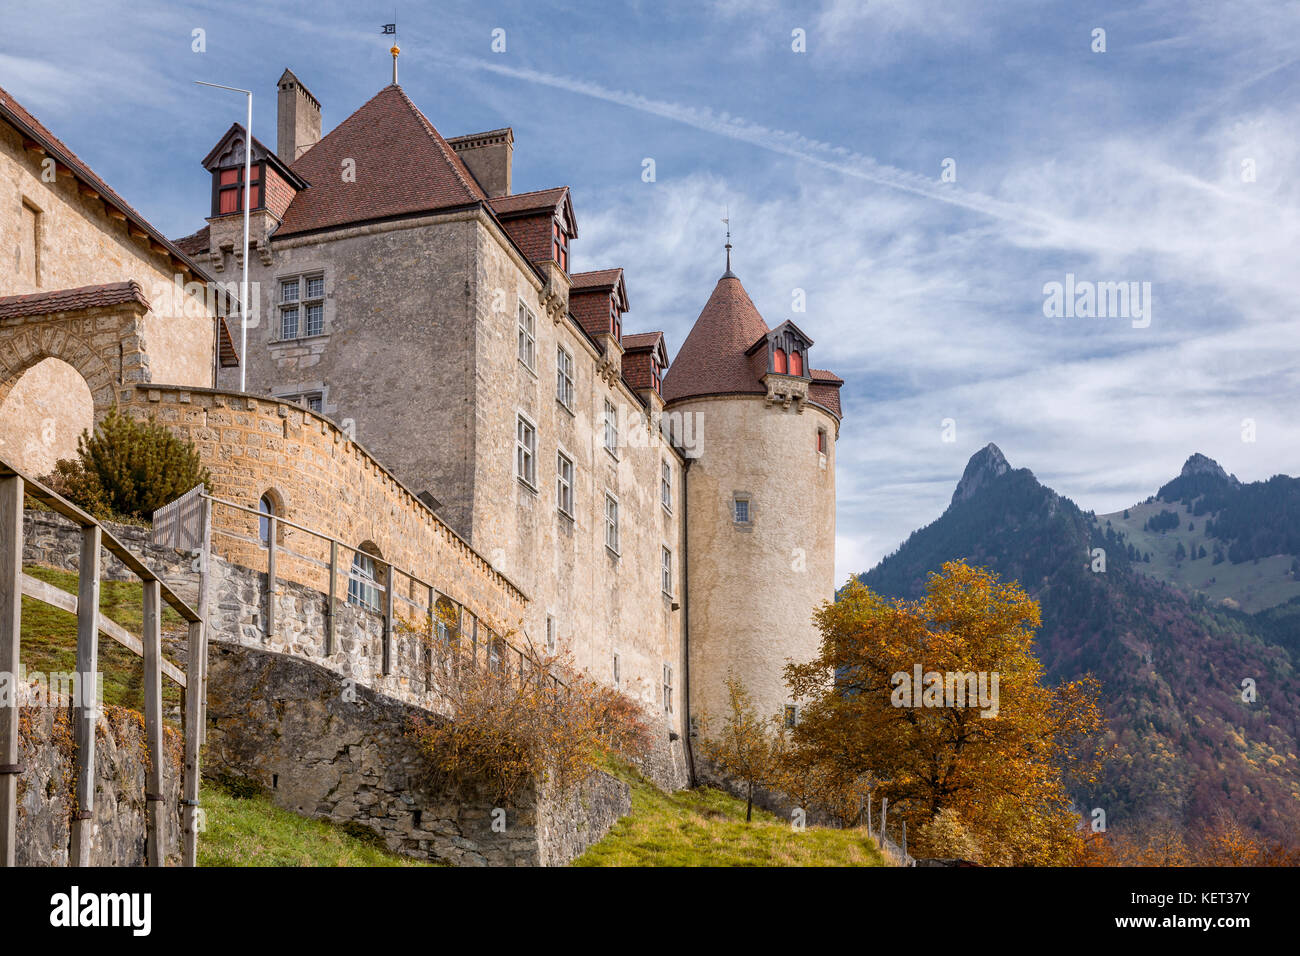 Gruyères Castle,  Gruyères, Fribourg, Switzerland - Stock Image